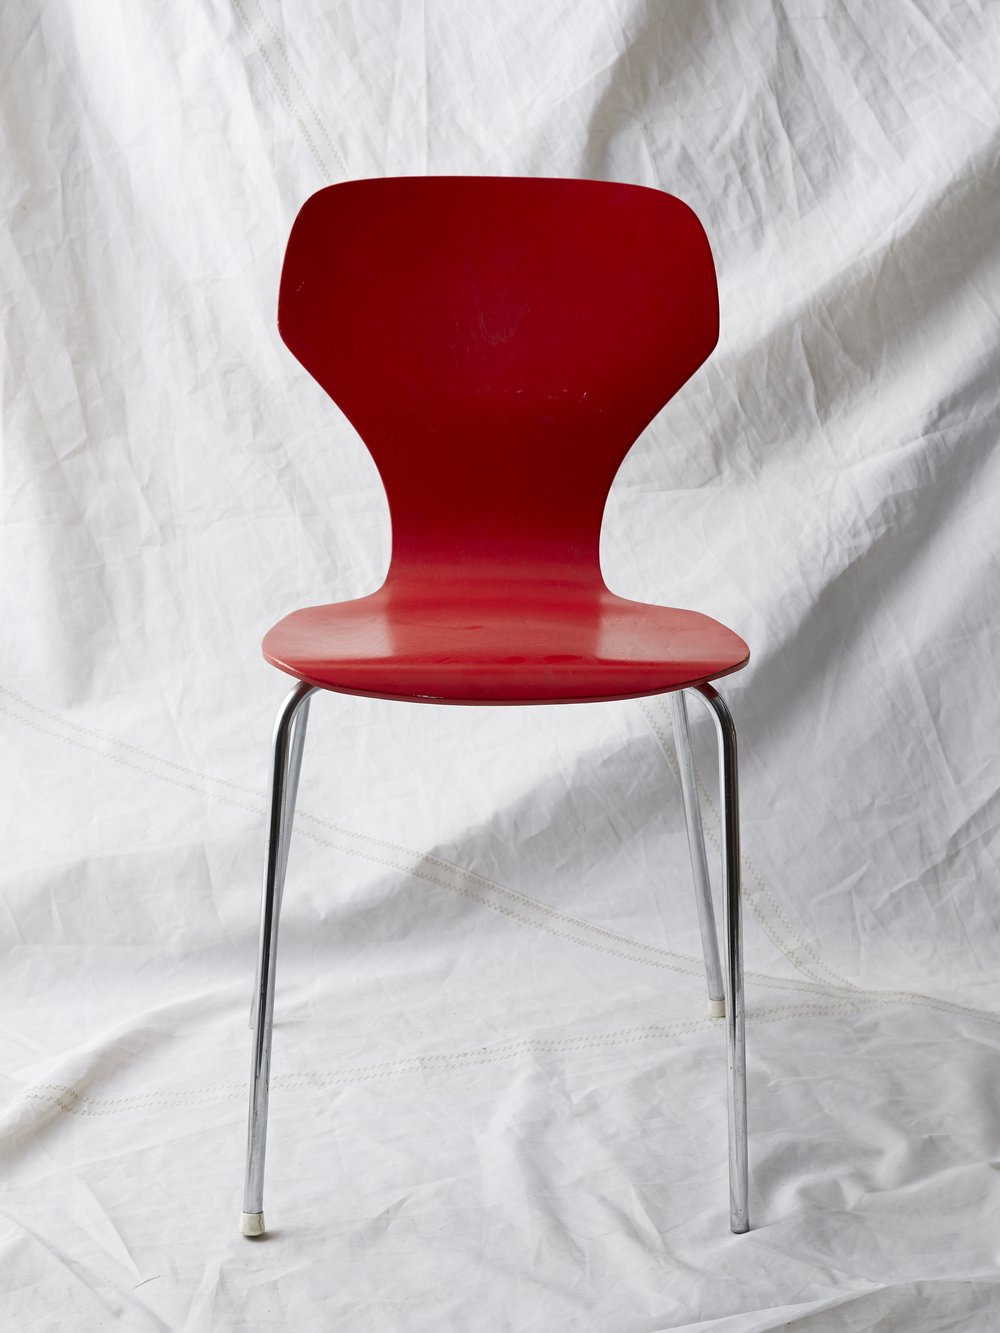 "CH018 Arne Jacobson style red chair 32"" H x 18"" W x 19"" D $75/week Set of 1"